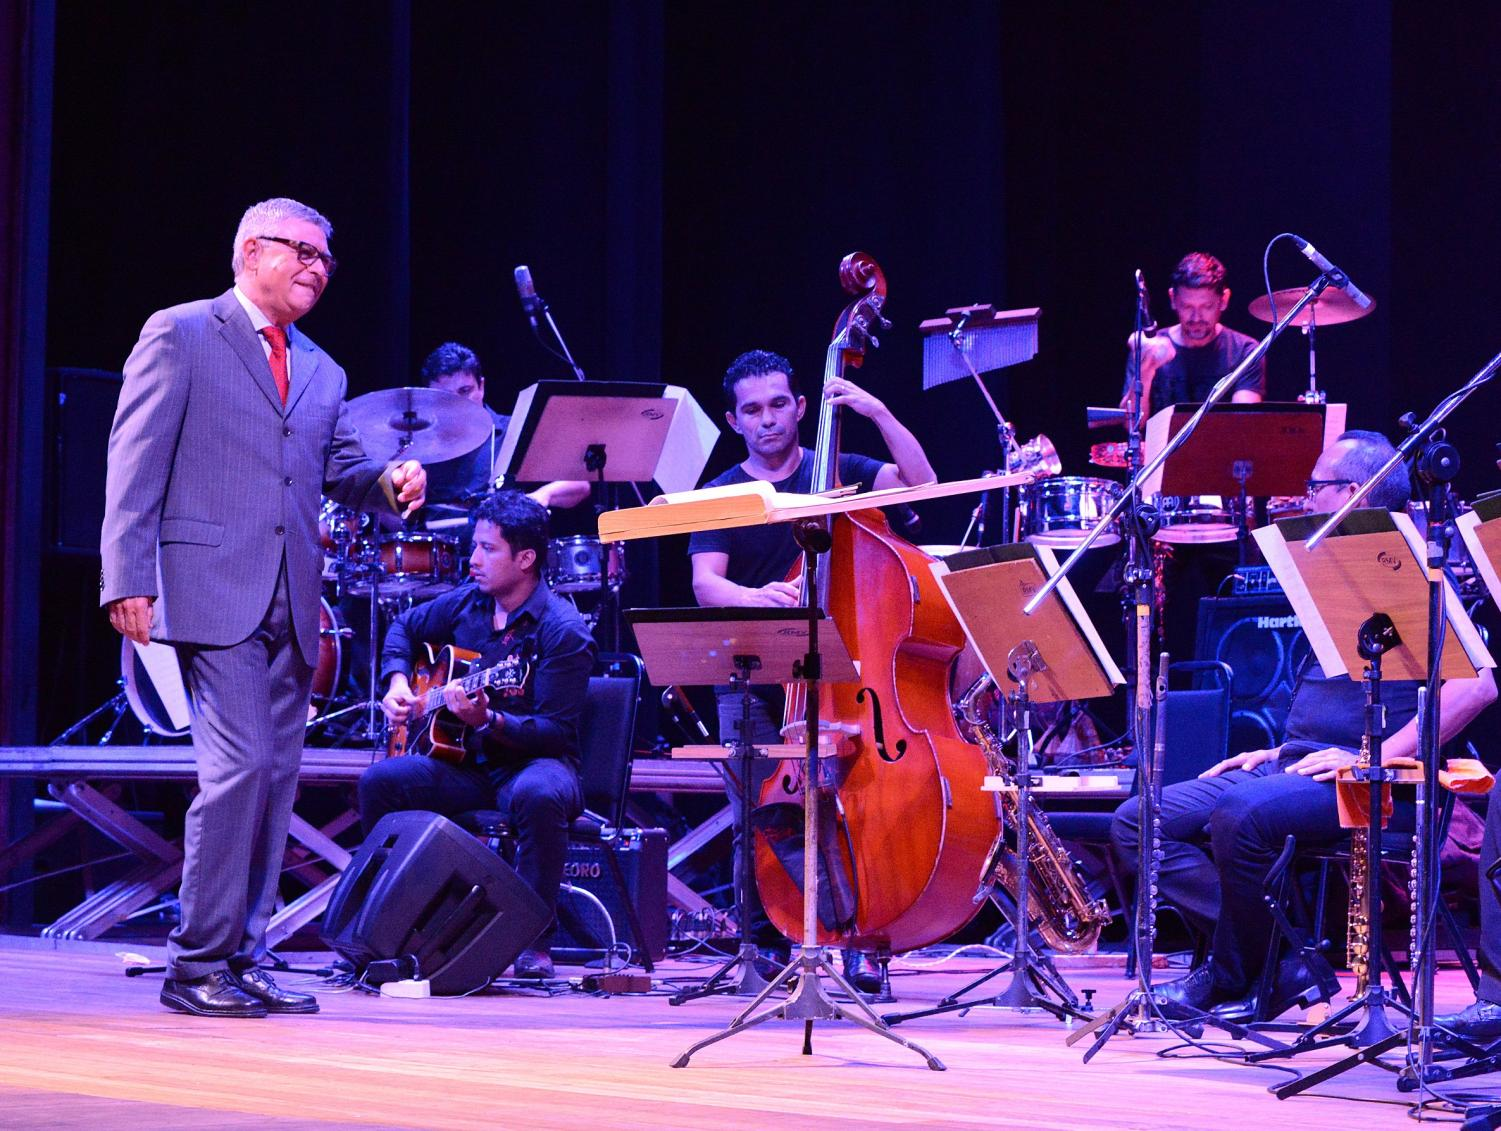 Rui Carvalho, Brazilian composer and arranger, will perform tonight alongside excited students in the CWU Jazz Band 1.